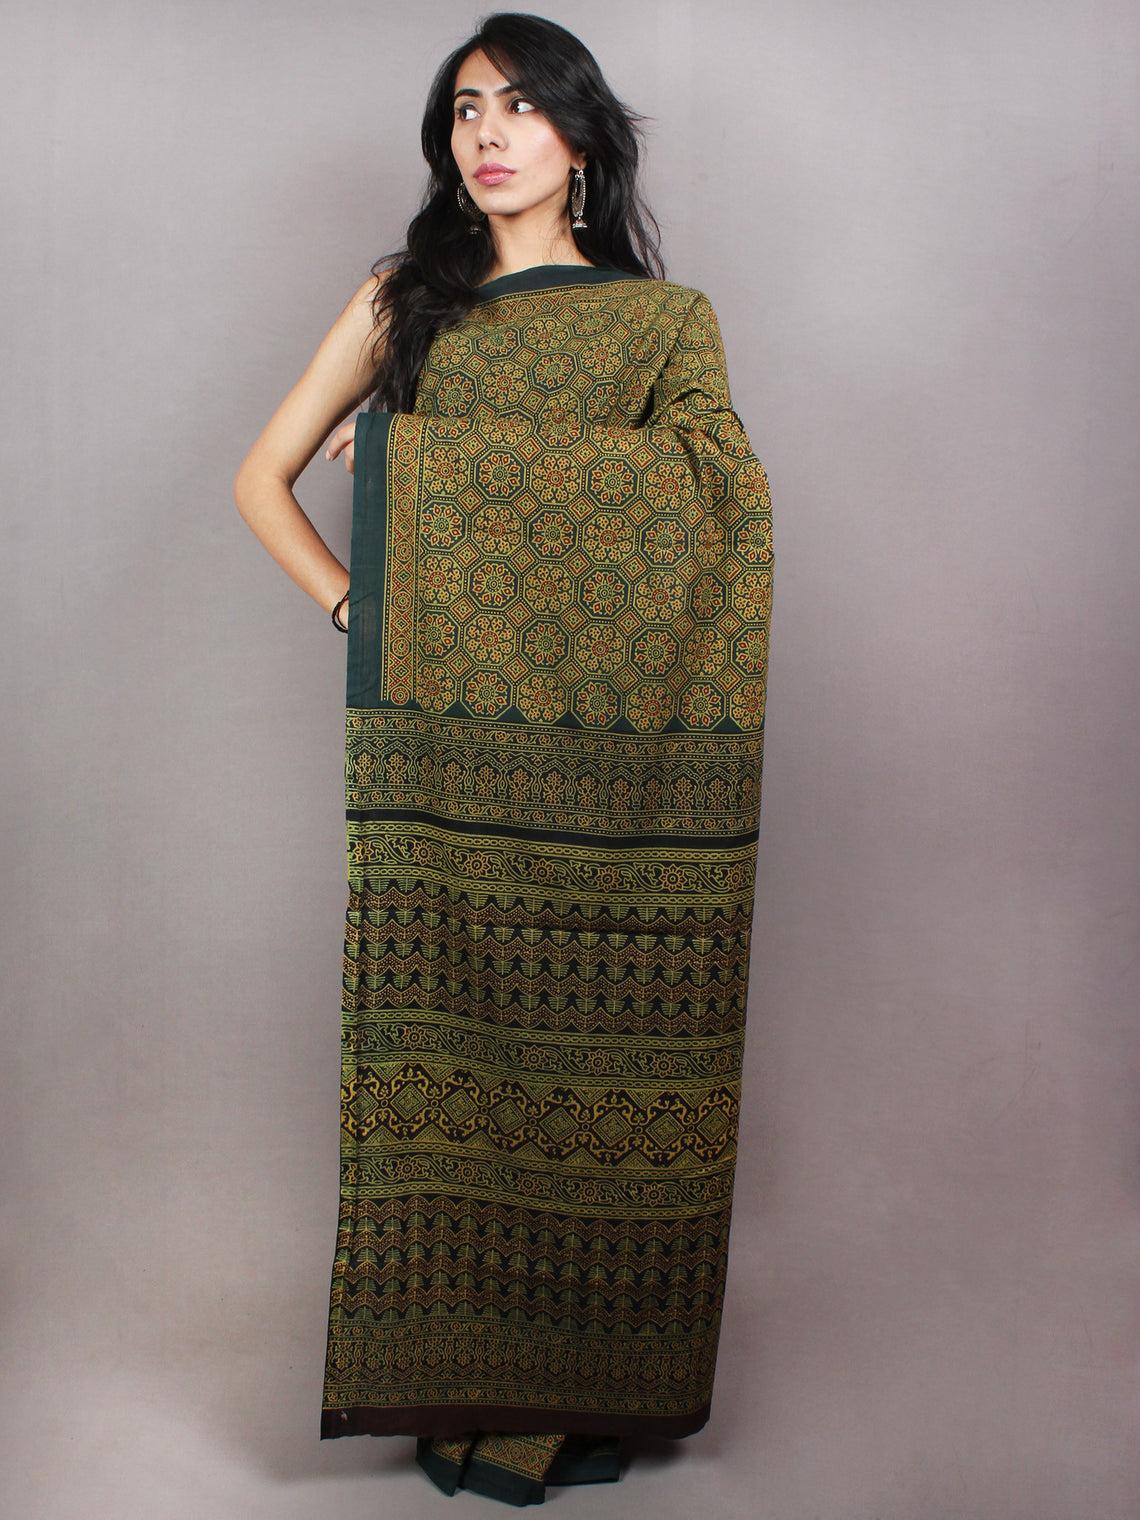 Dark Green Beige Mughal Nakashi Ajrakh Hand Block Printed in Natural Vegetable Colors Cotton Mul Saree - S03170743